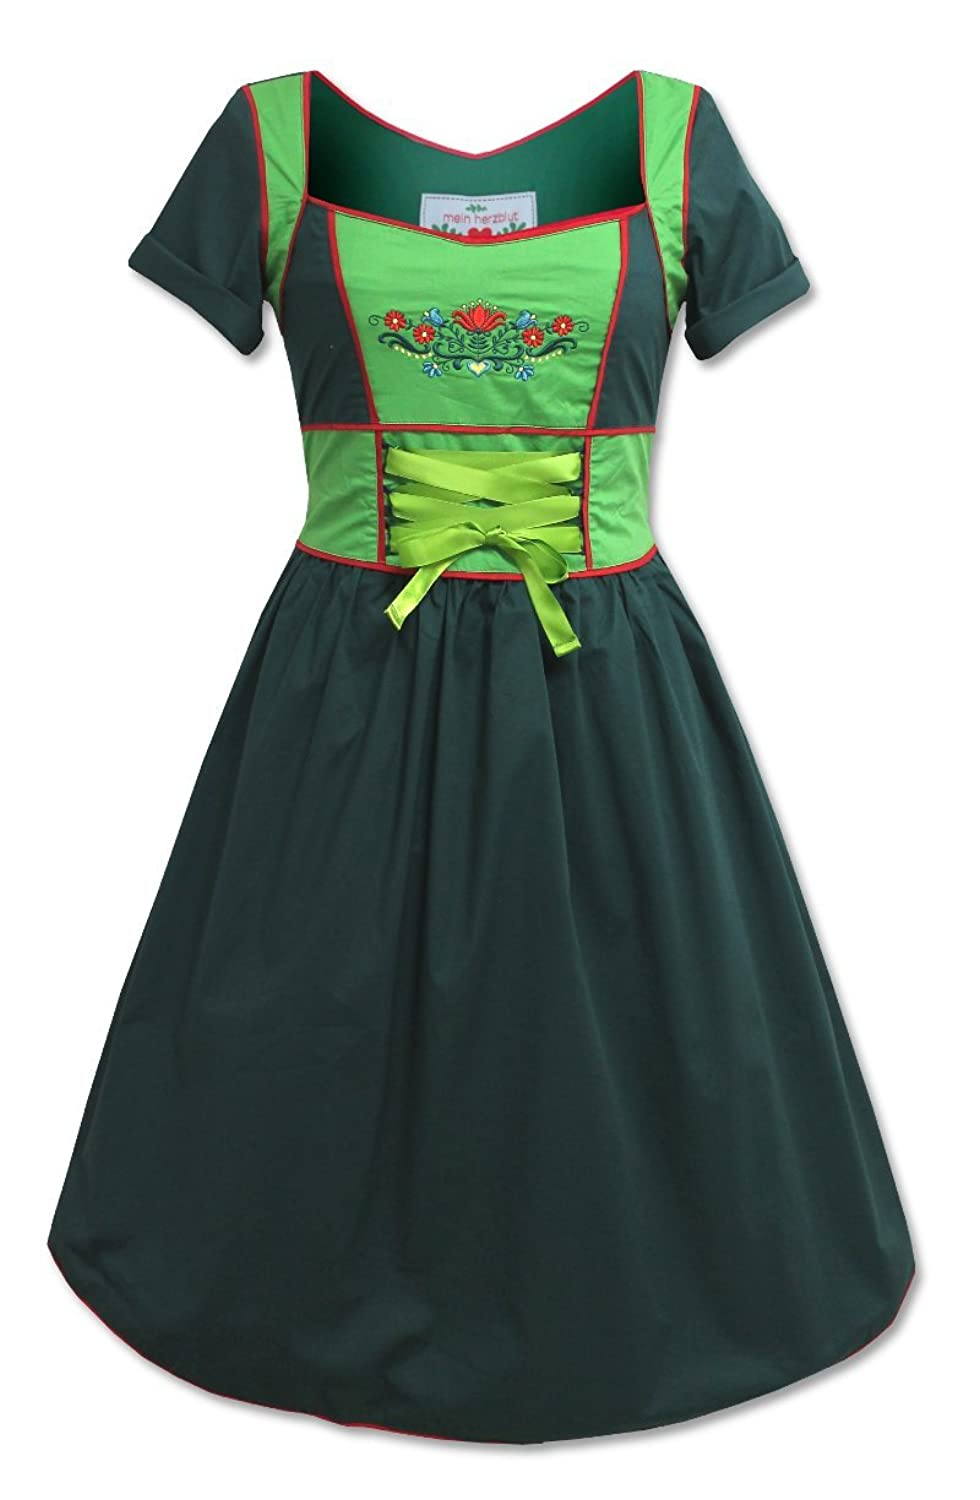 Wiesn Oktoberfest Karwendel Alpen Party Kleid Trachten